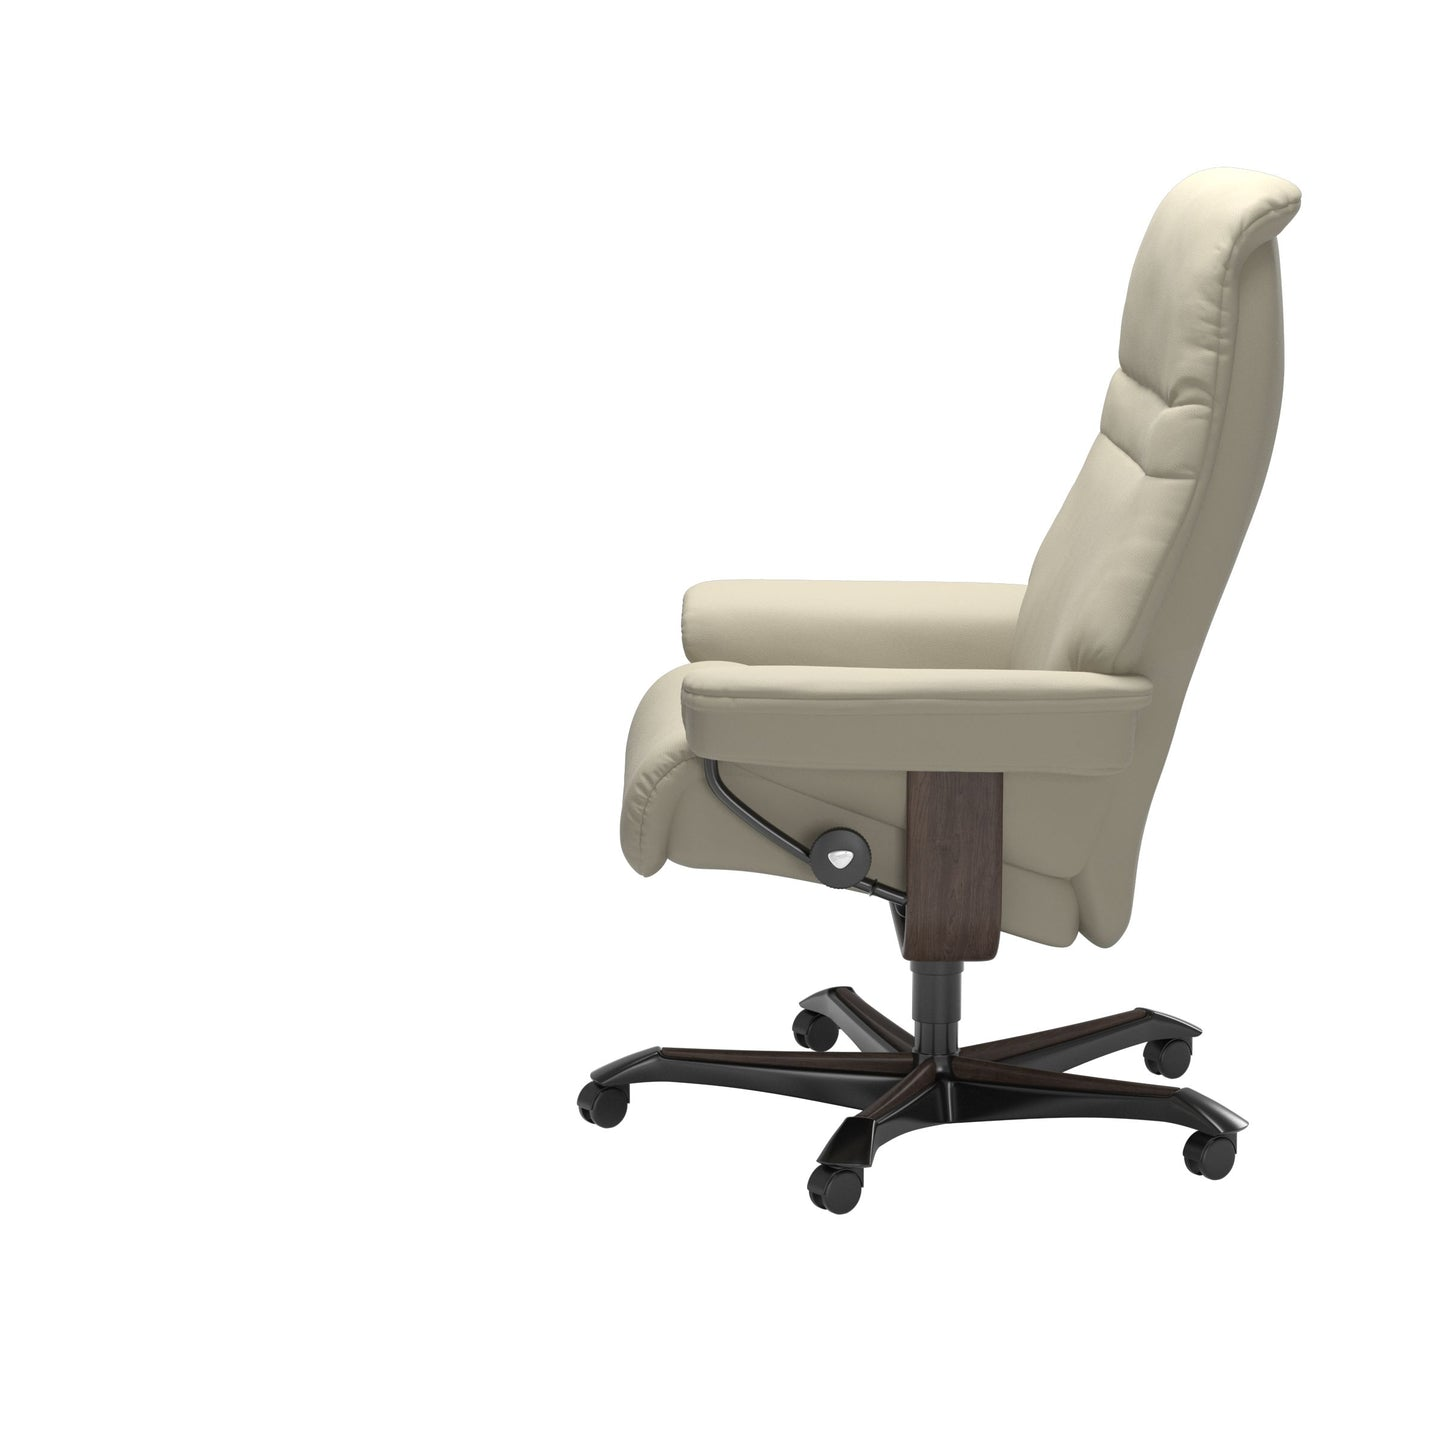 Stressless® Sunrise Office